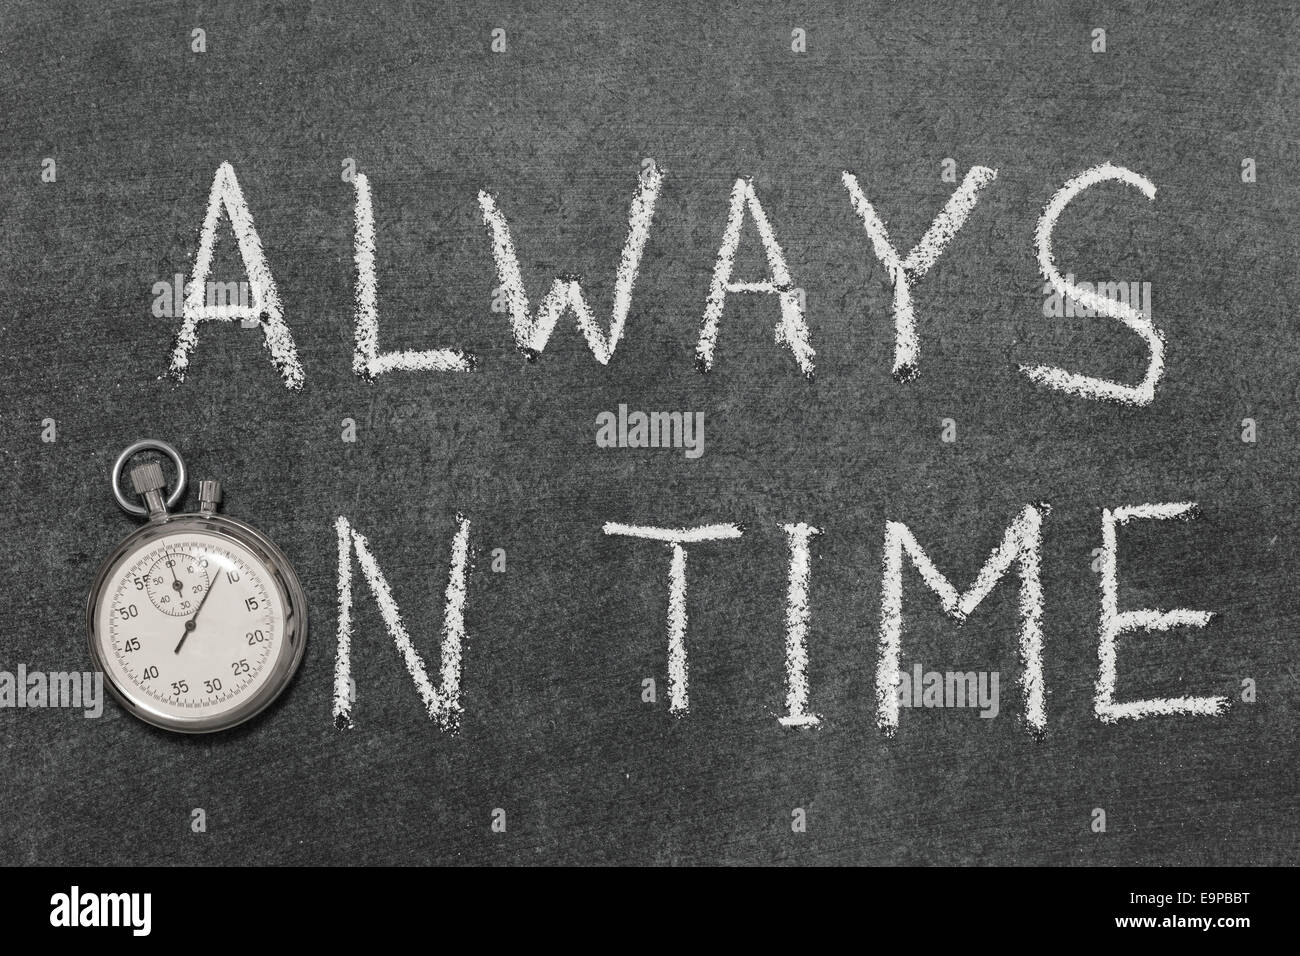 always on time concept handwritten on chalkboard with vintage precise stopwatch used instead of O - Stock Image